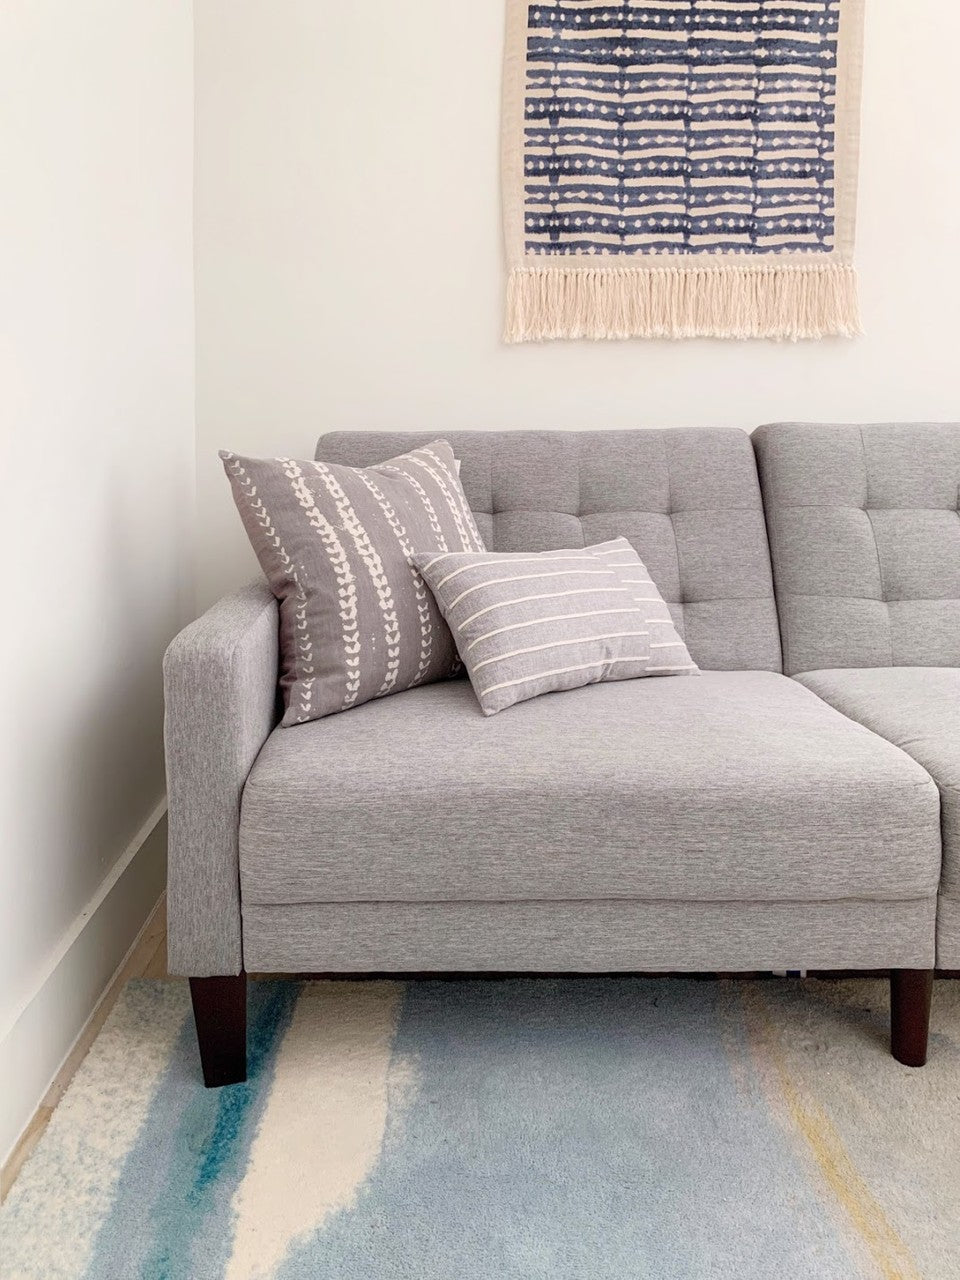 grey couch with two printed grey pillows on top, in front of white wall. Pastel water colored rug on floor